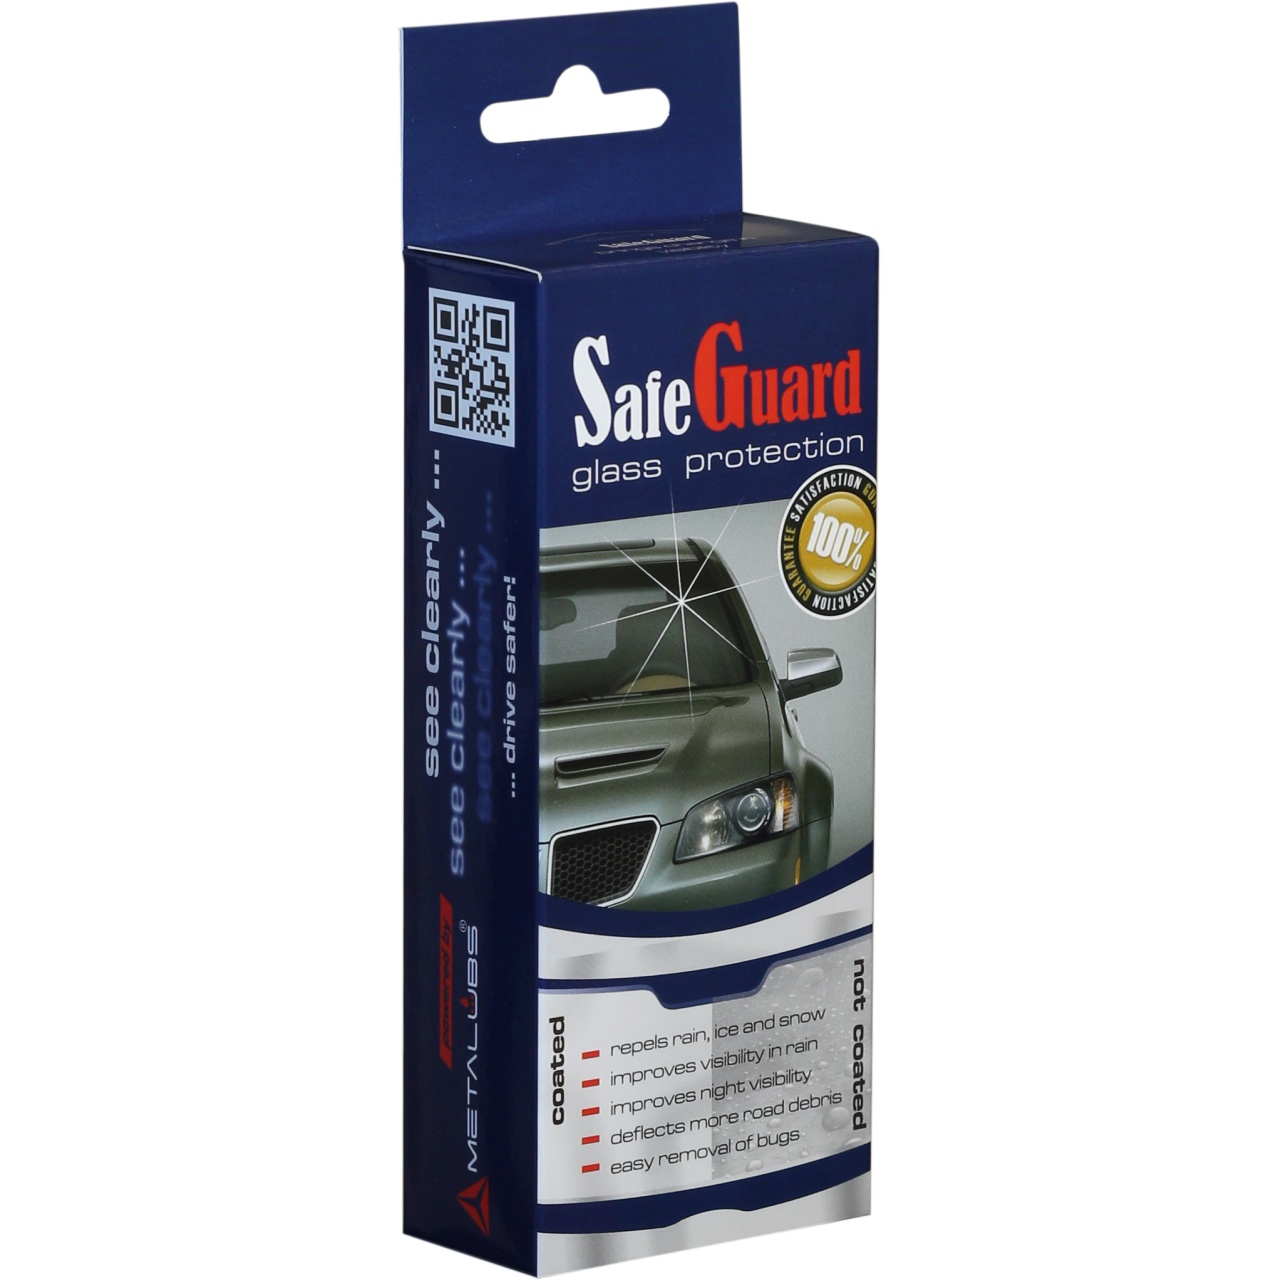 Safe Guard-glass protection